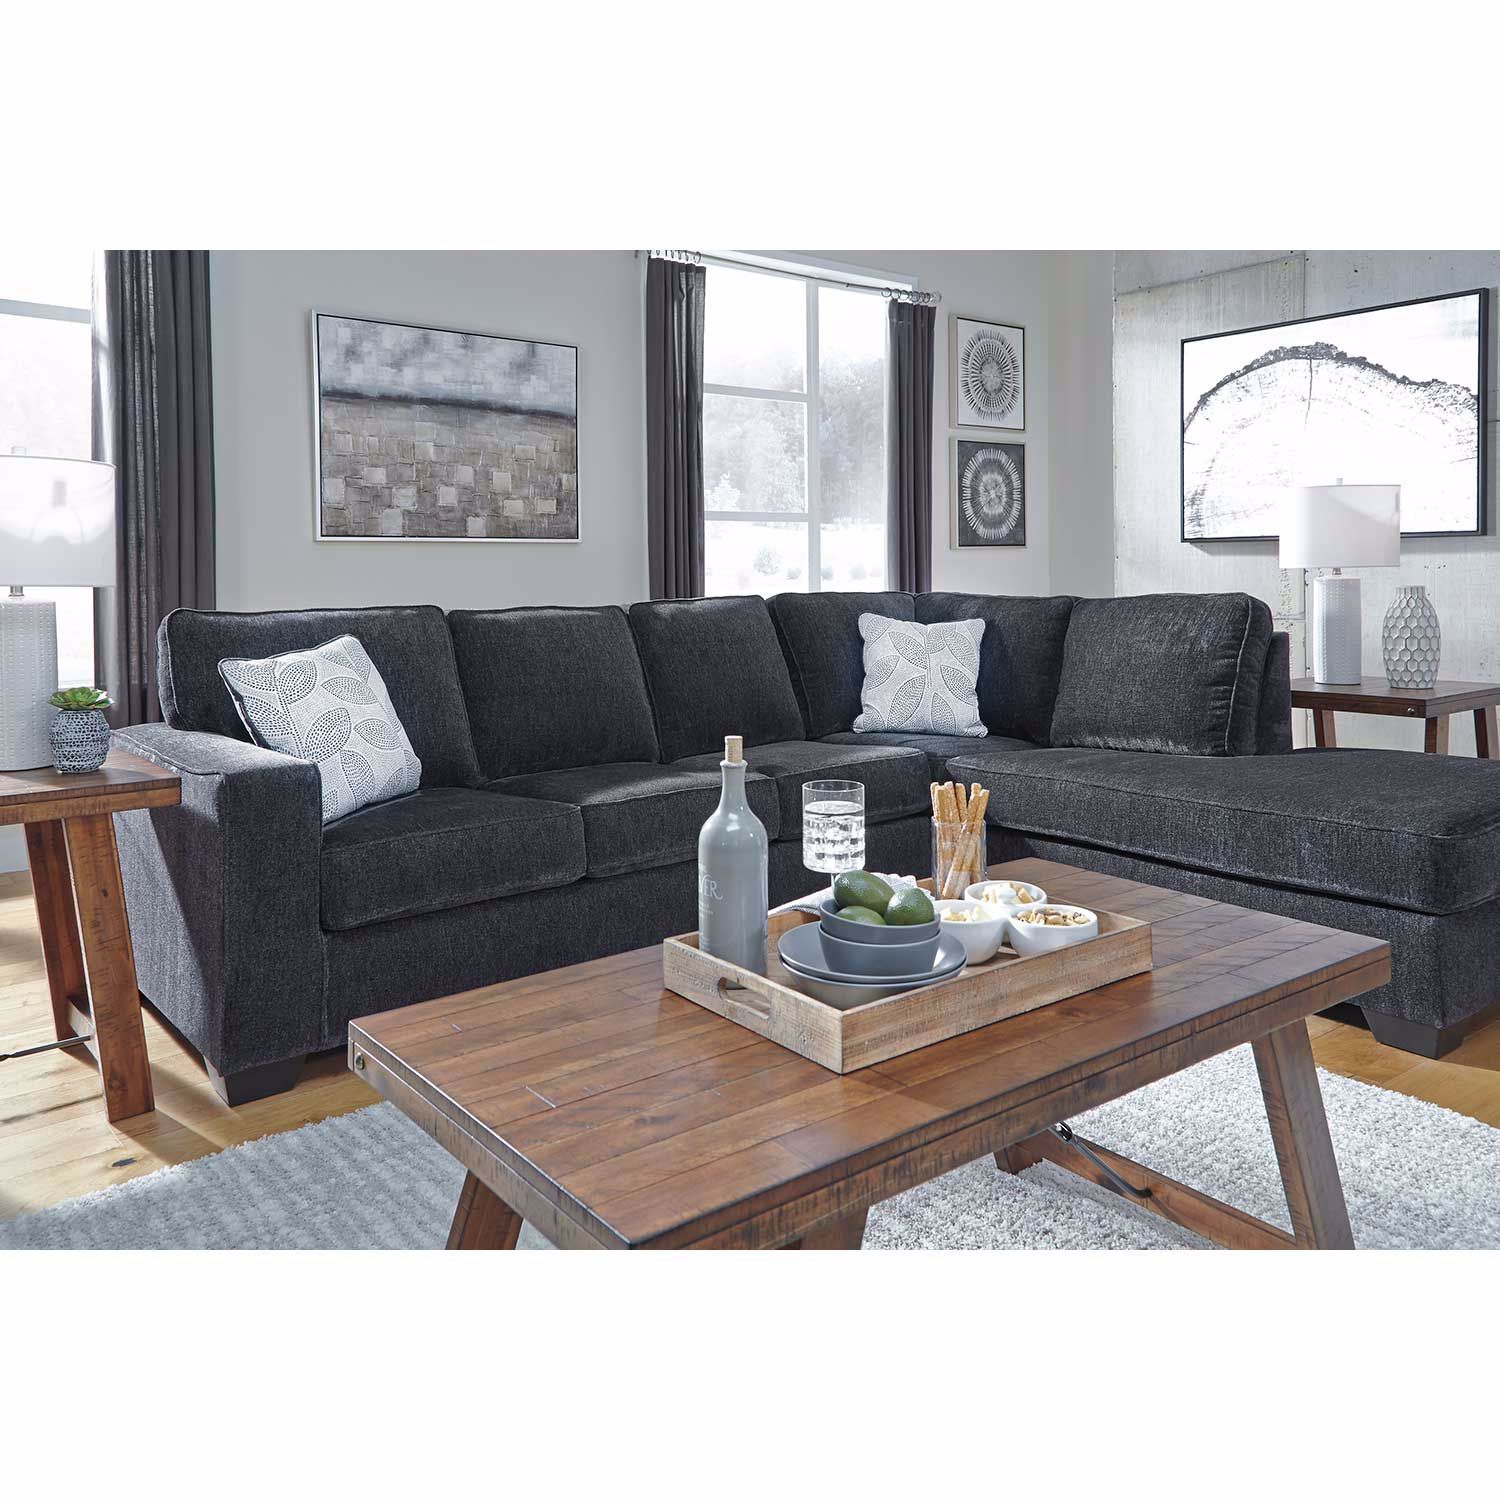 Picture of Altari Slate 2 PC Sleeper Sectional with LAF Chais